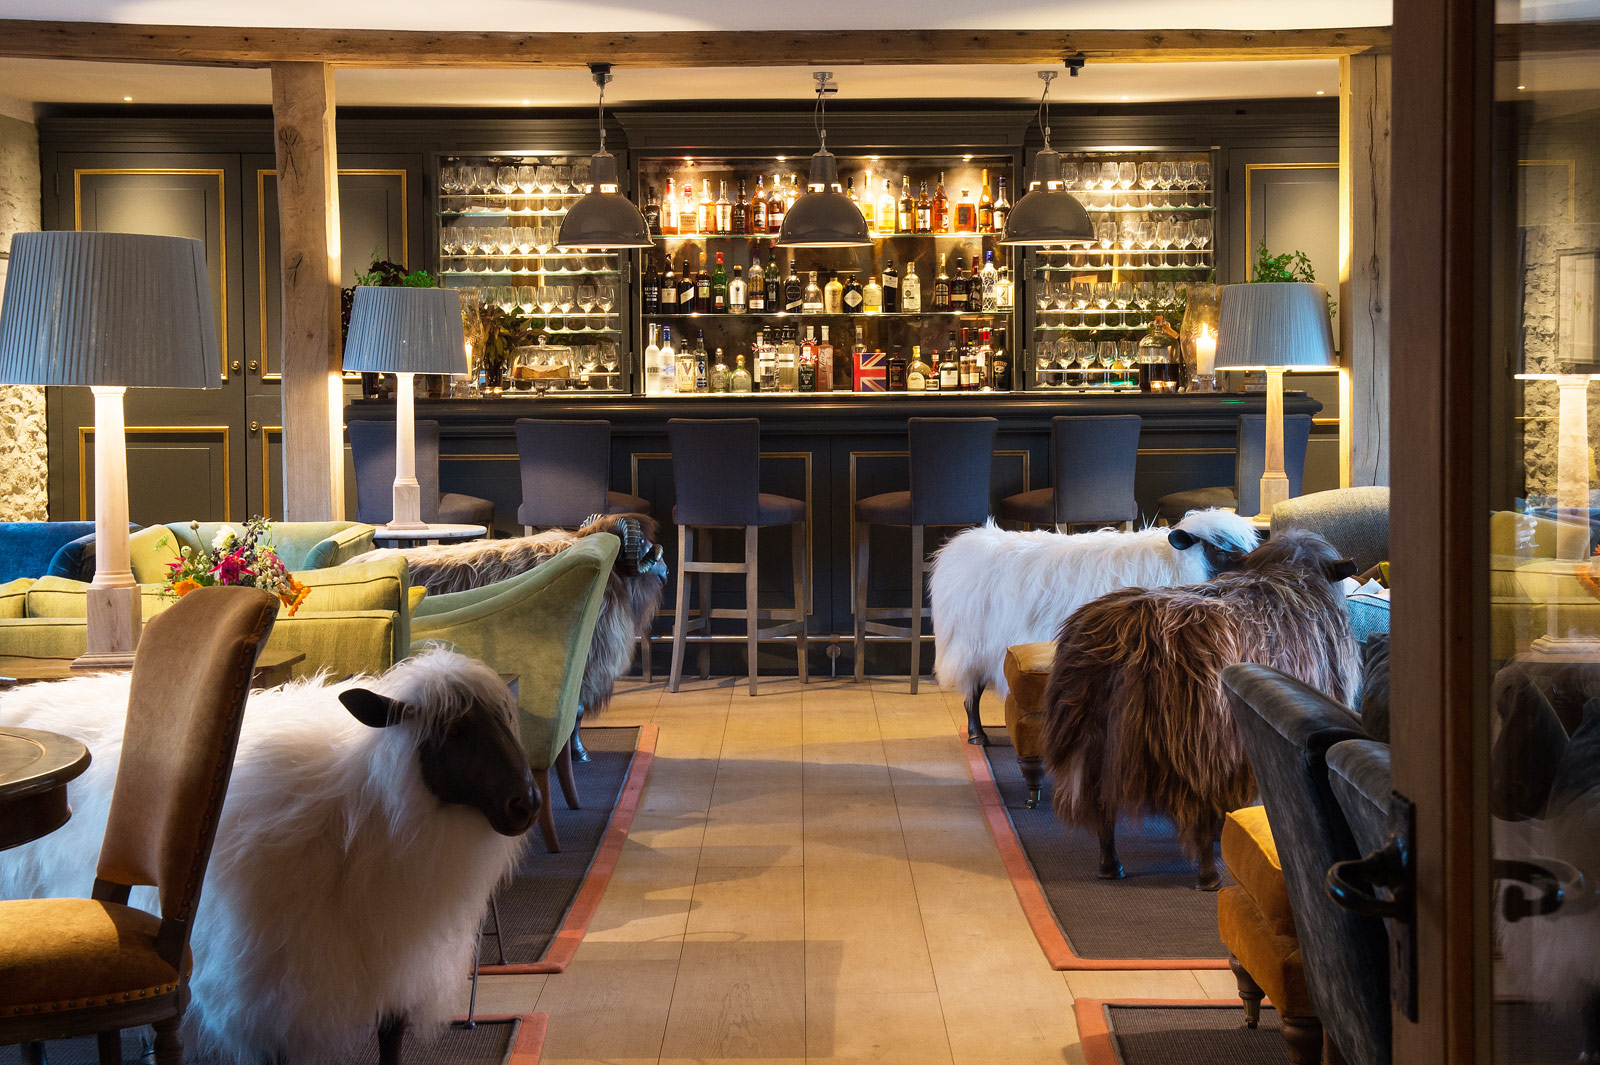 Thyme For A Luxurious Stay In England's Beautiful Cotswolds 12